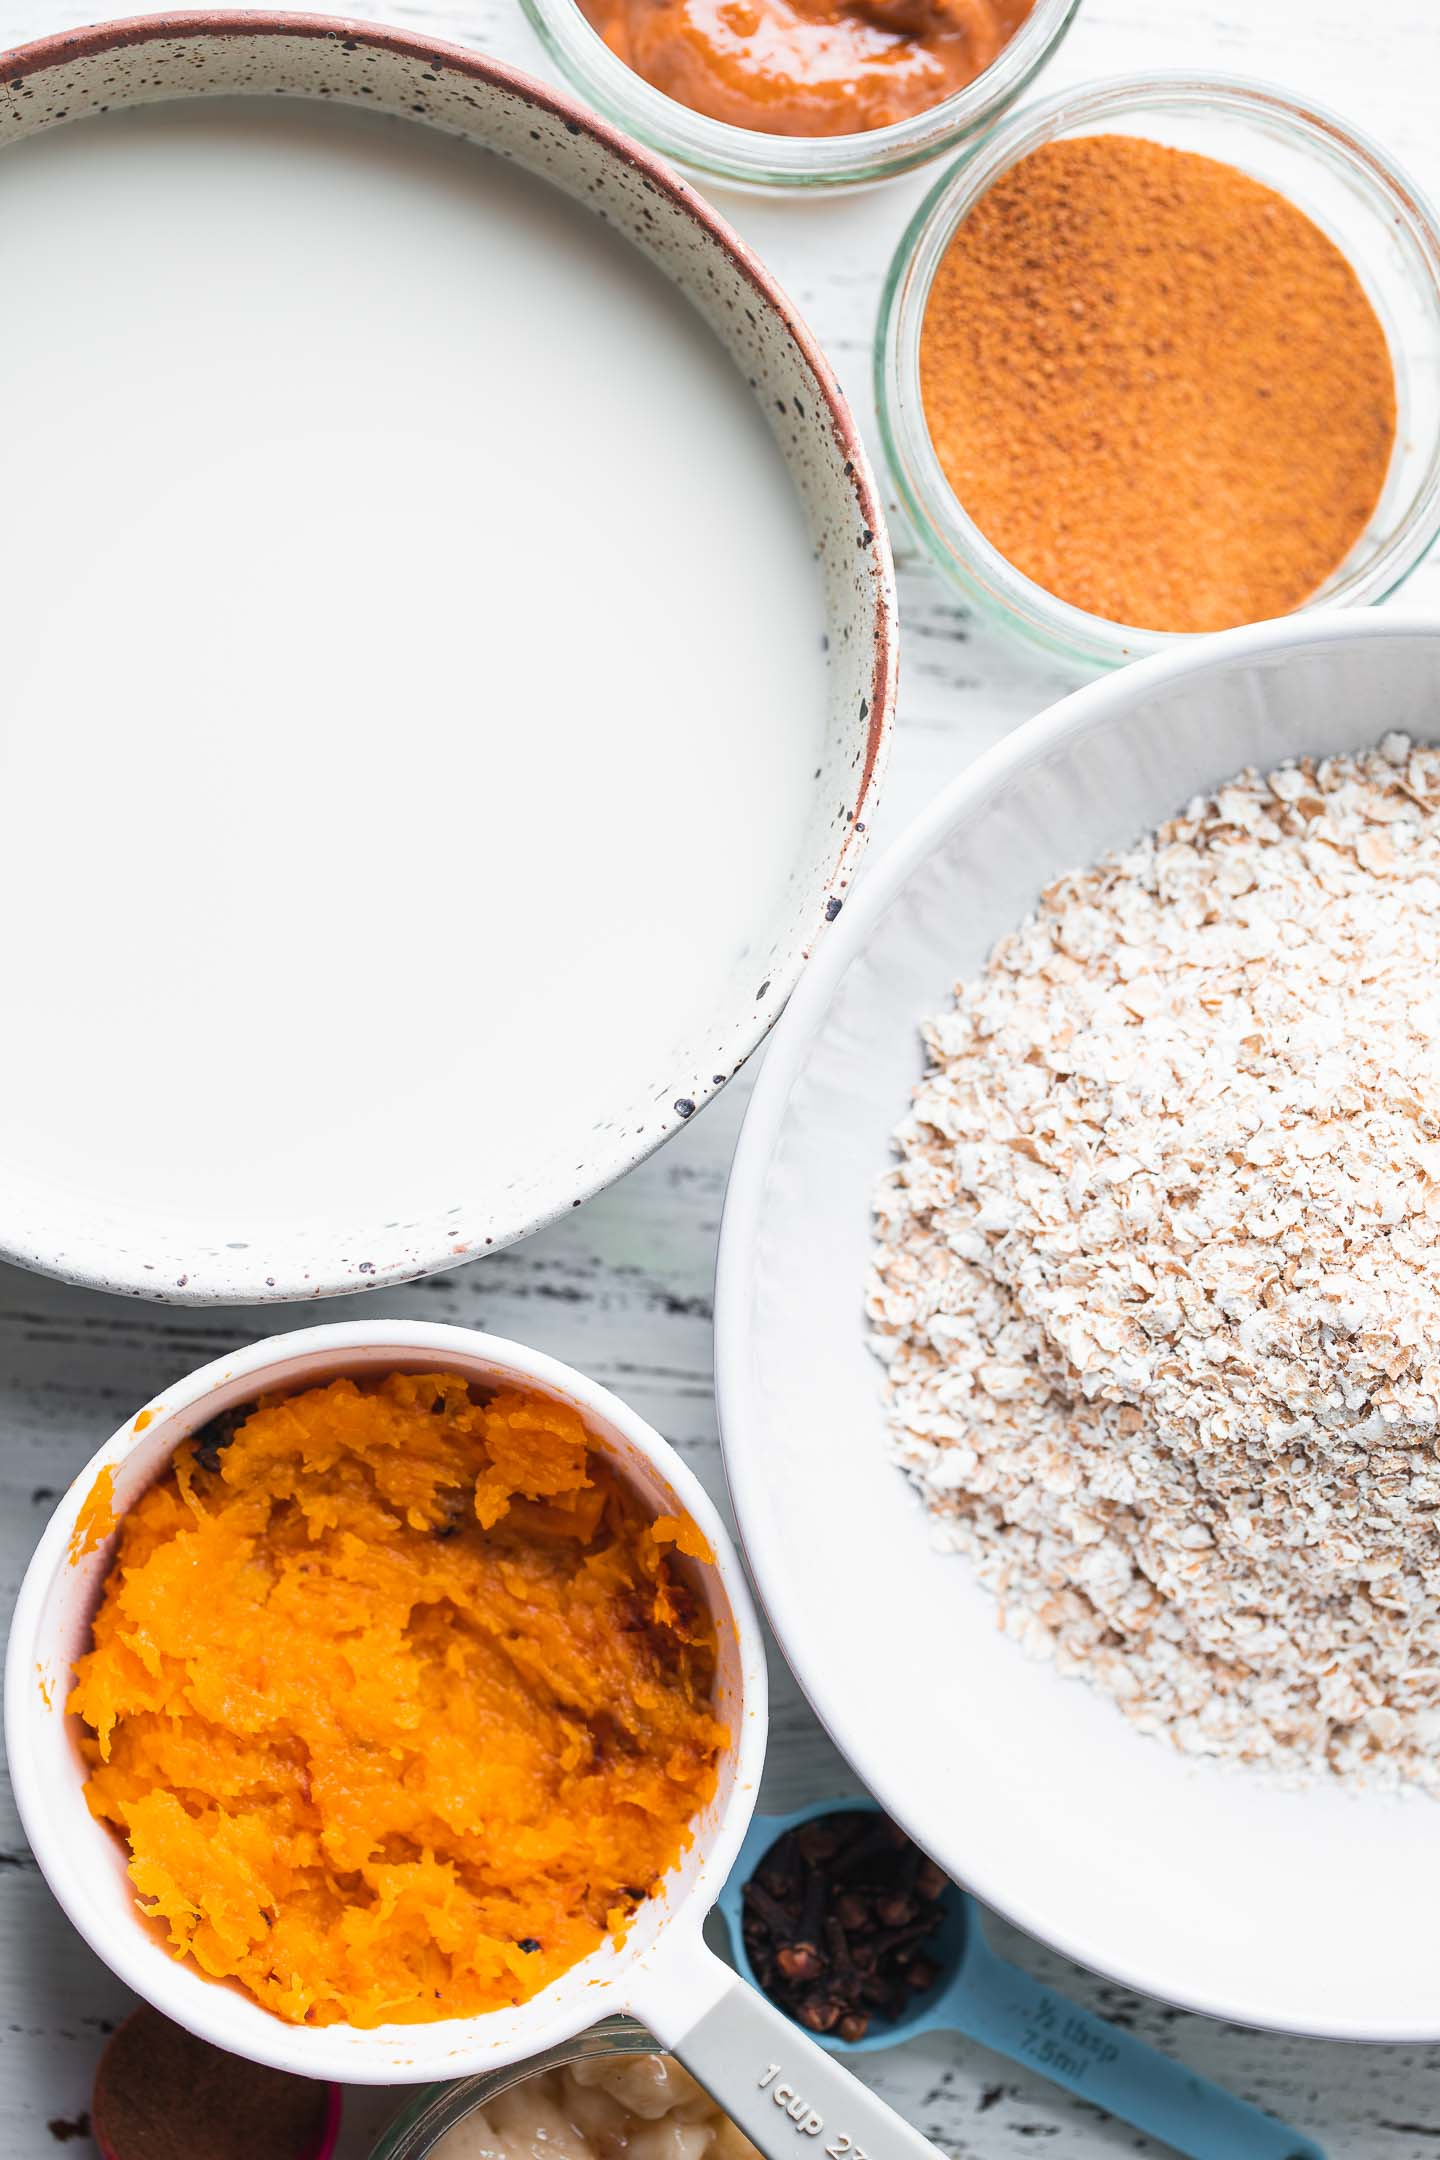 Ingredients for pumpkin baked oatmeal